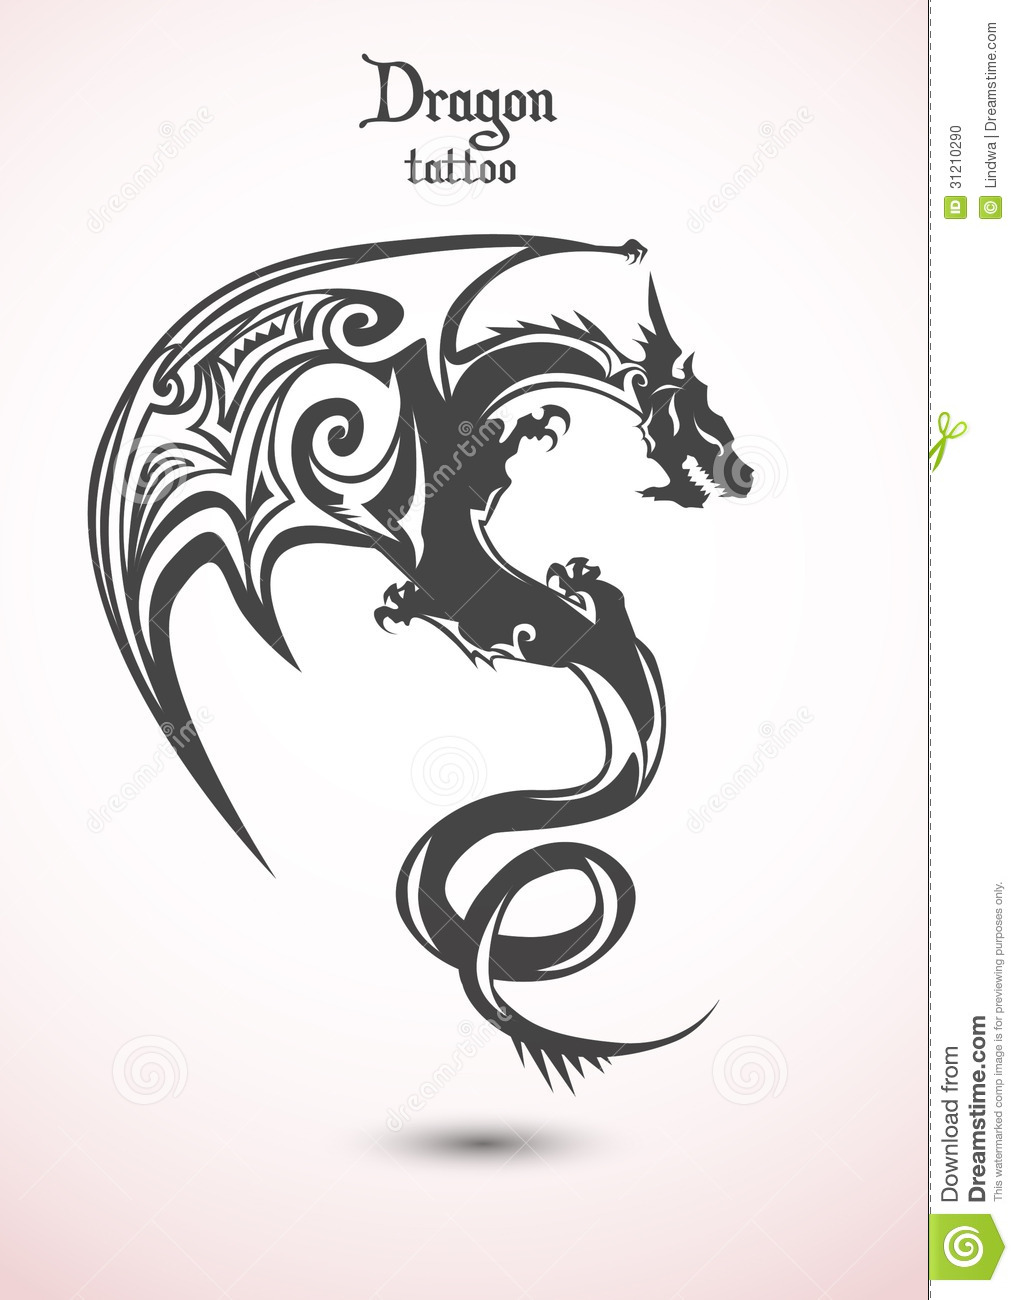 Illustration Tattoos: Dragon Tattoo Stock Photo